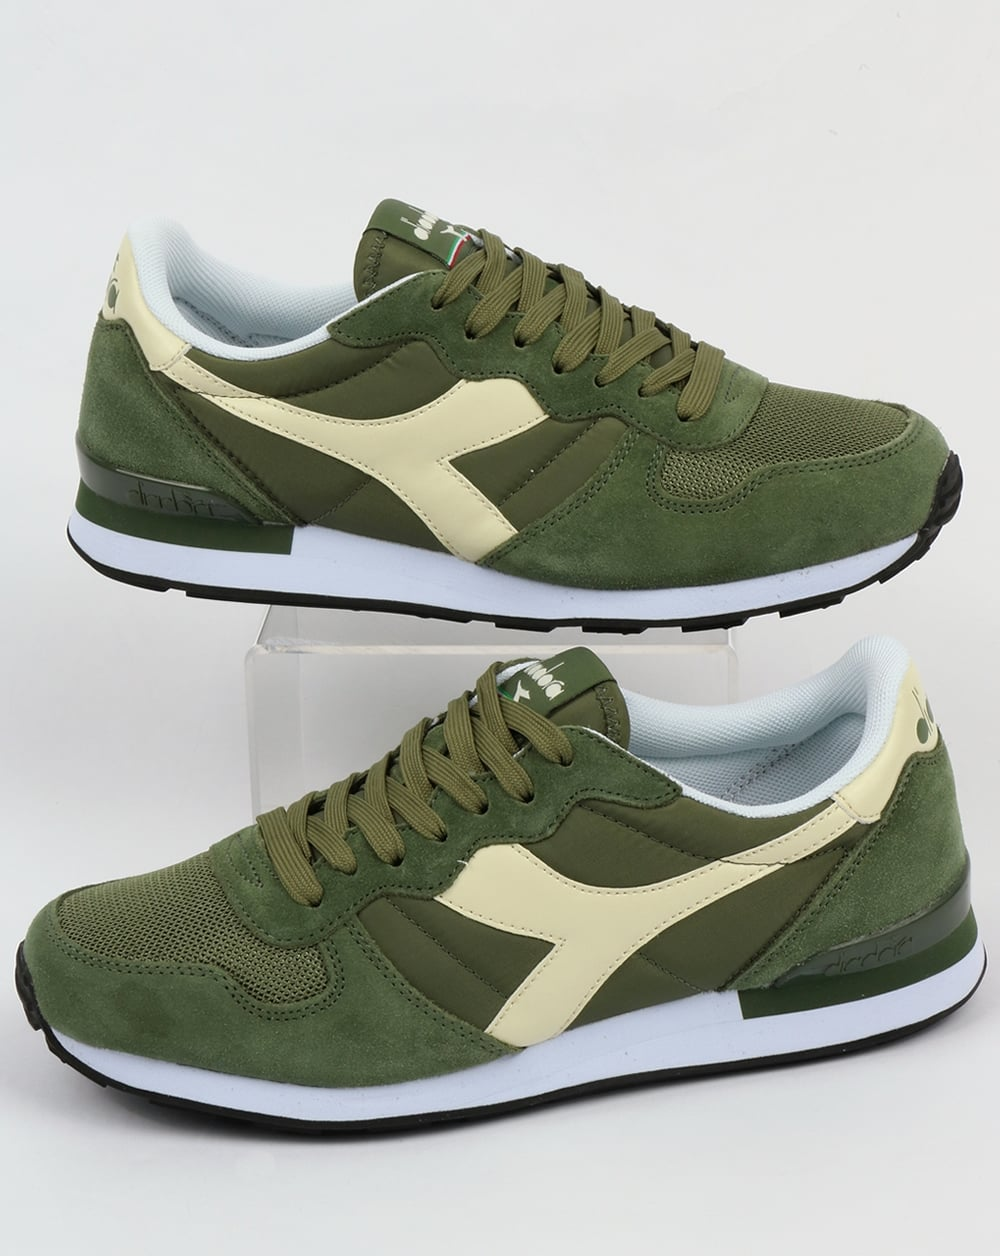 Diadora Camaro Trainers Olive,og,shoes,runners,mens